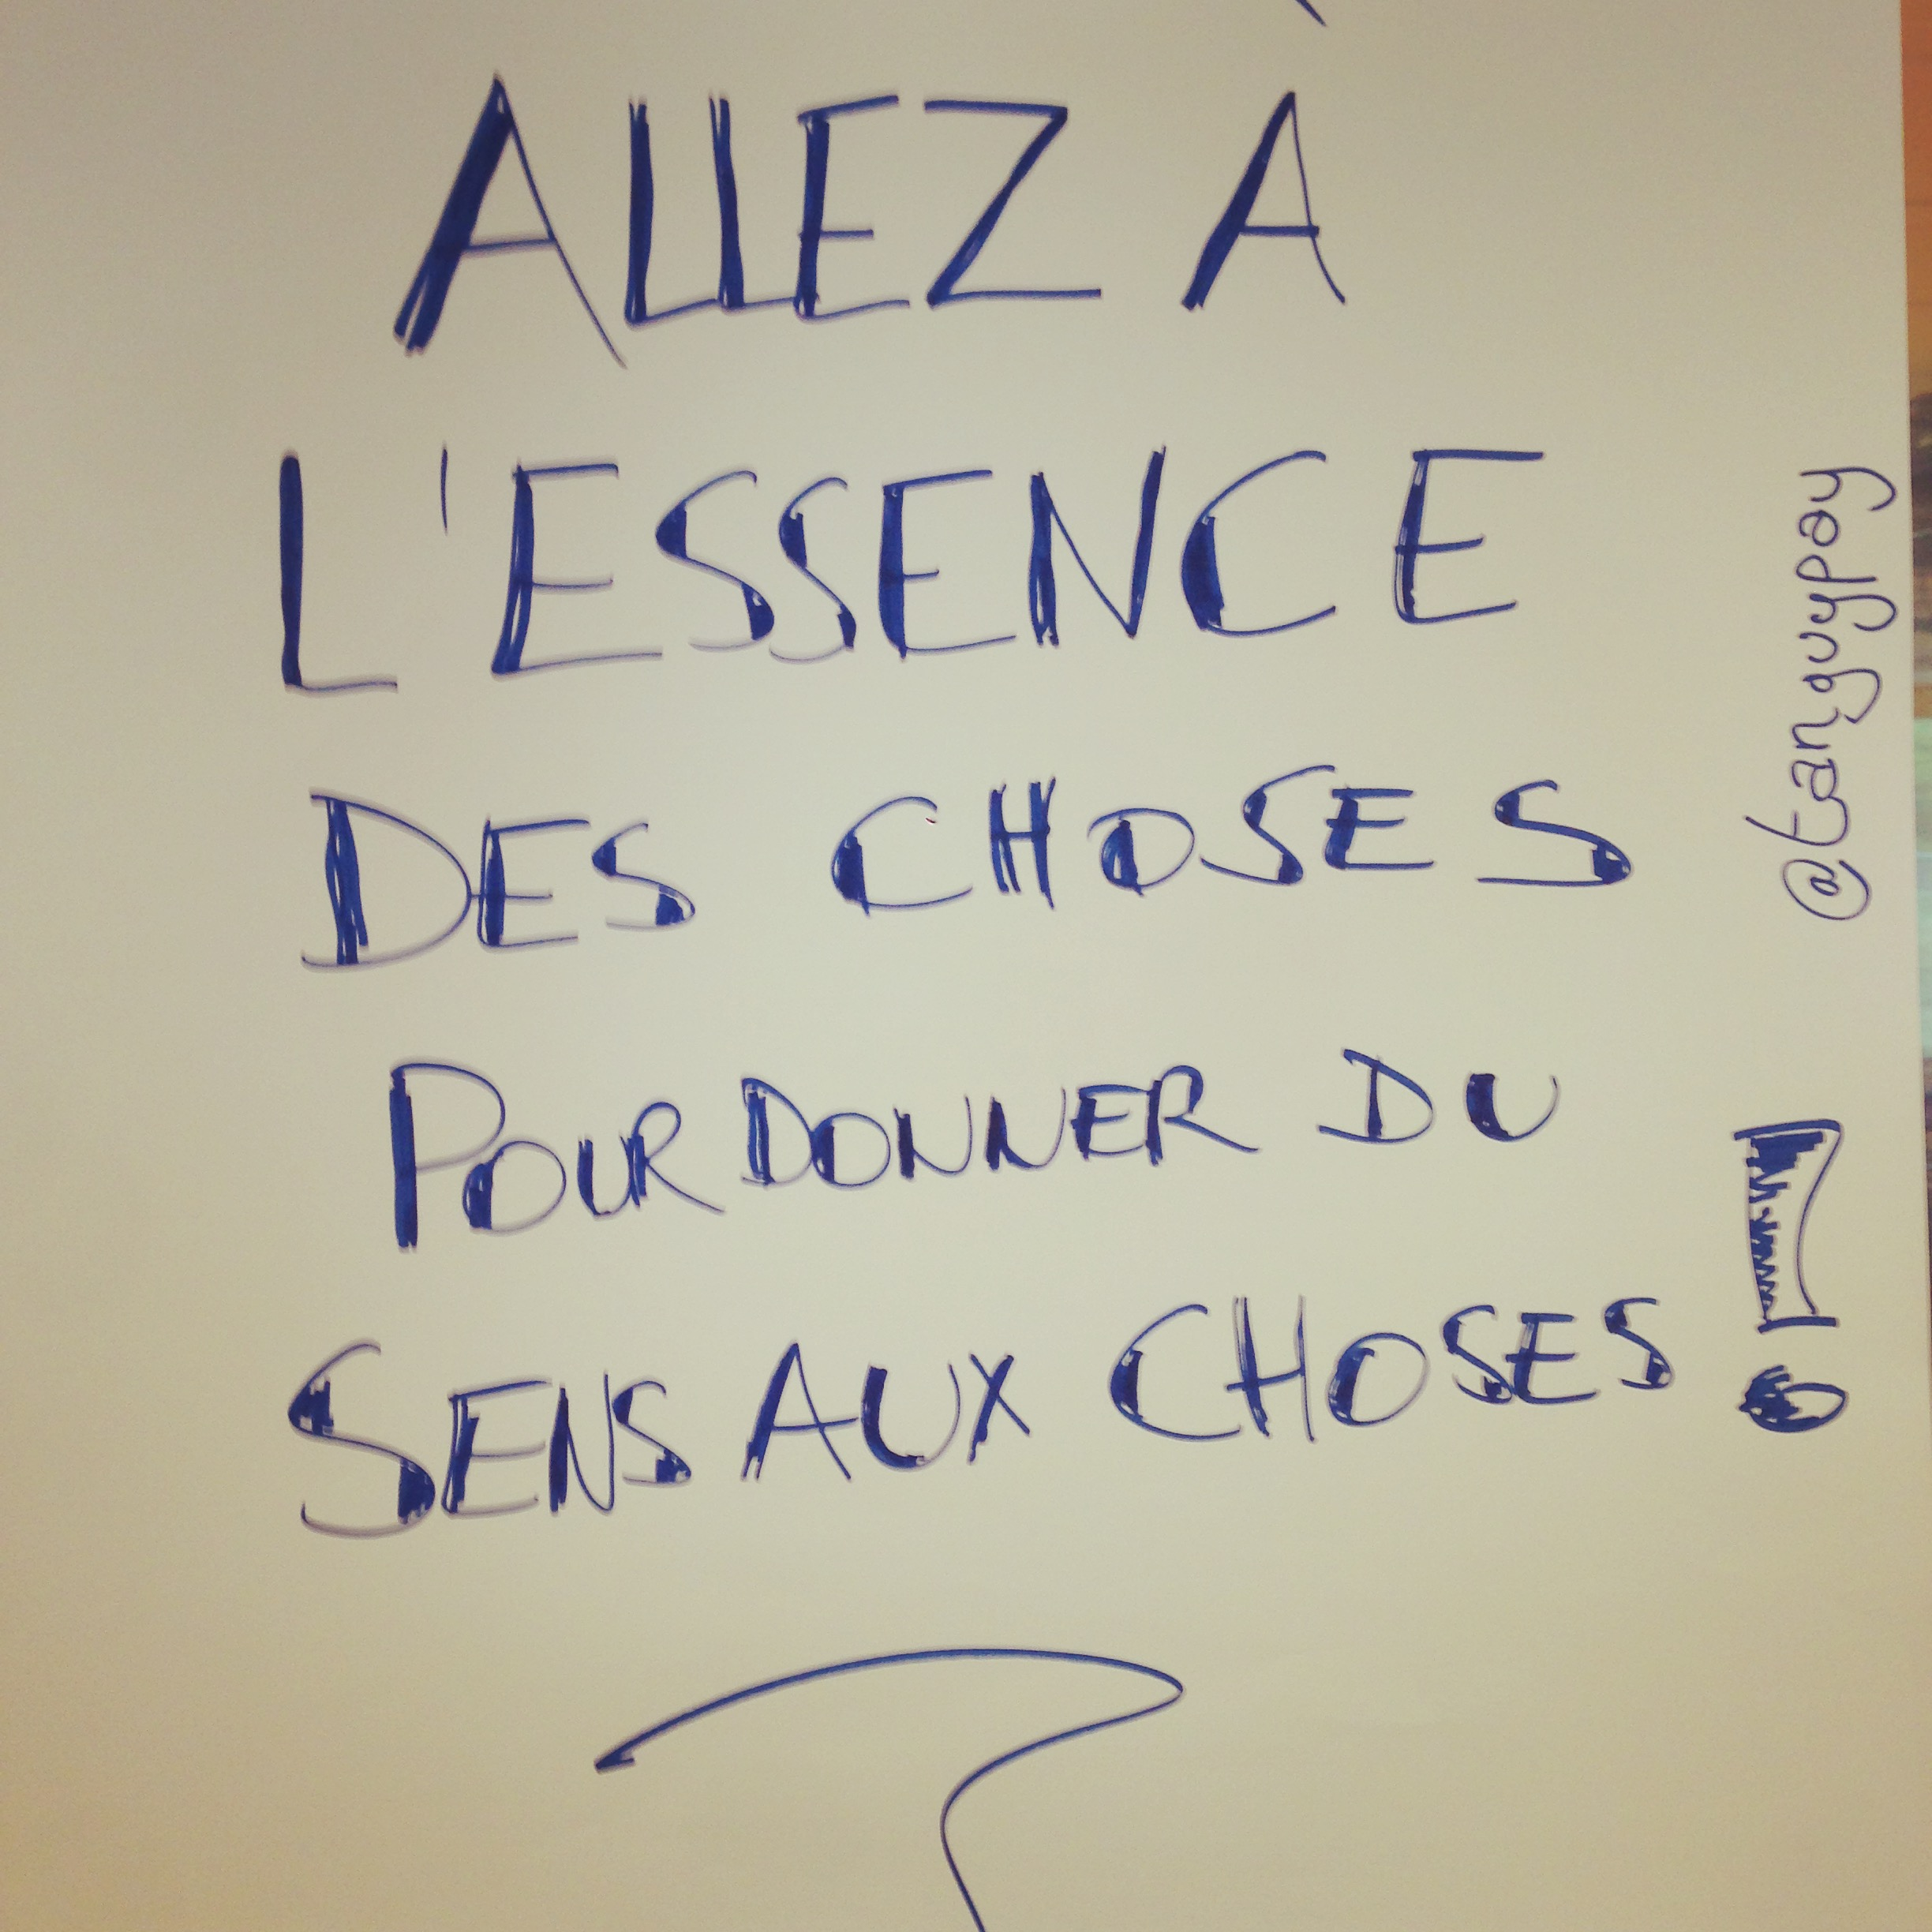 L'essence des choses